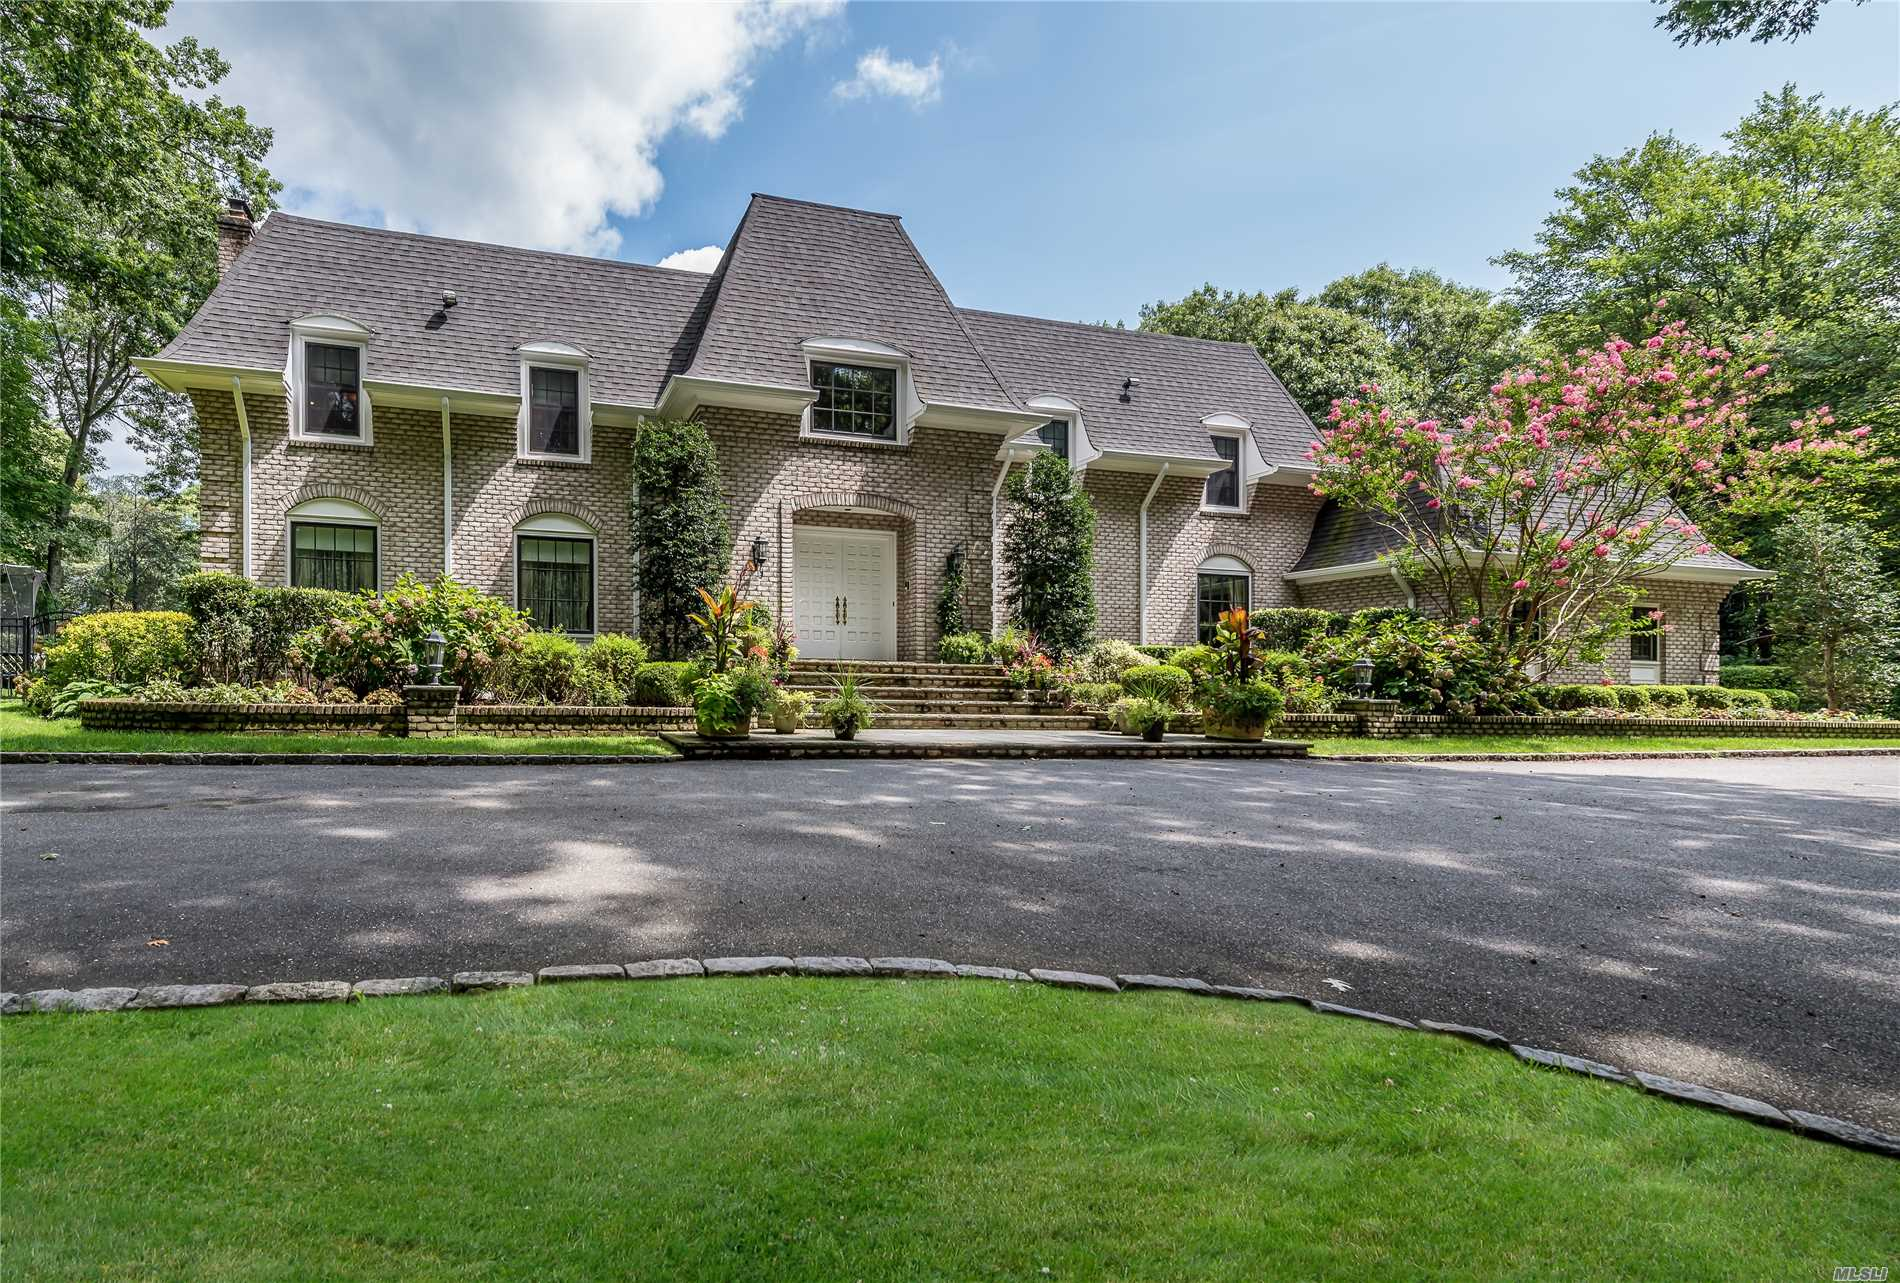 Majestic Brick Center Hall Colonial Set On Over 2 Acres Of Lush Manicured Property Located In The Enclave Of Oyster Bay Estates,  Features 2 Story Ef W/ Cascading Staircase, Oversized Principle Rms, Brand New White Kitchen W/ State Of The Art Prof Appls (Wolf, Sub Zero, Miele), Coffered Ceiling And Radiant Flr Heat, 2 Master Bdrms Suites, 4 Add'l Bdrms, 2 Jack & Jill Bths, Hardwood Floors And Custom Millwork Throughout. County Club Yard W/ Heated Ig Gunite Pool. Too Much To List. Must See!!!